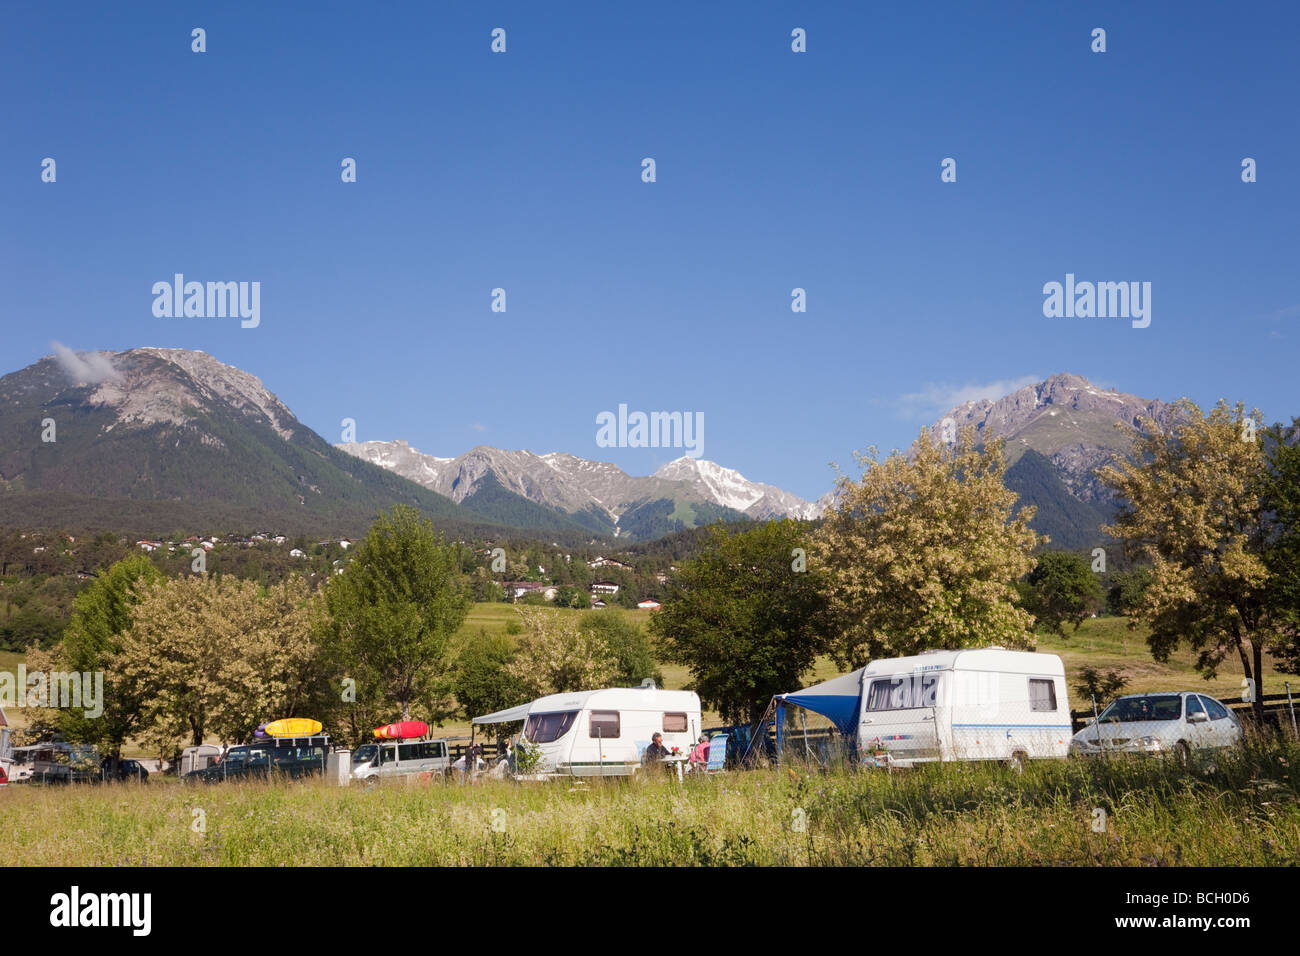 Campsite Stock Photos & Campsite Stock Images - Alamy